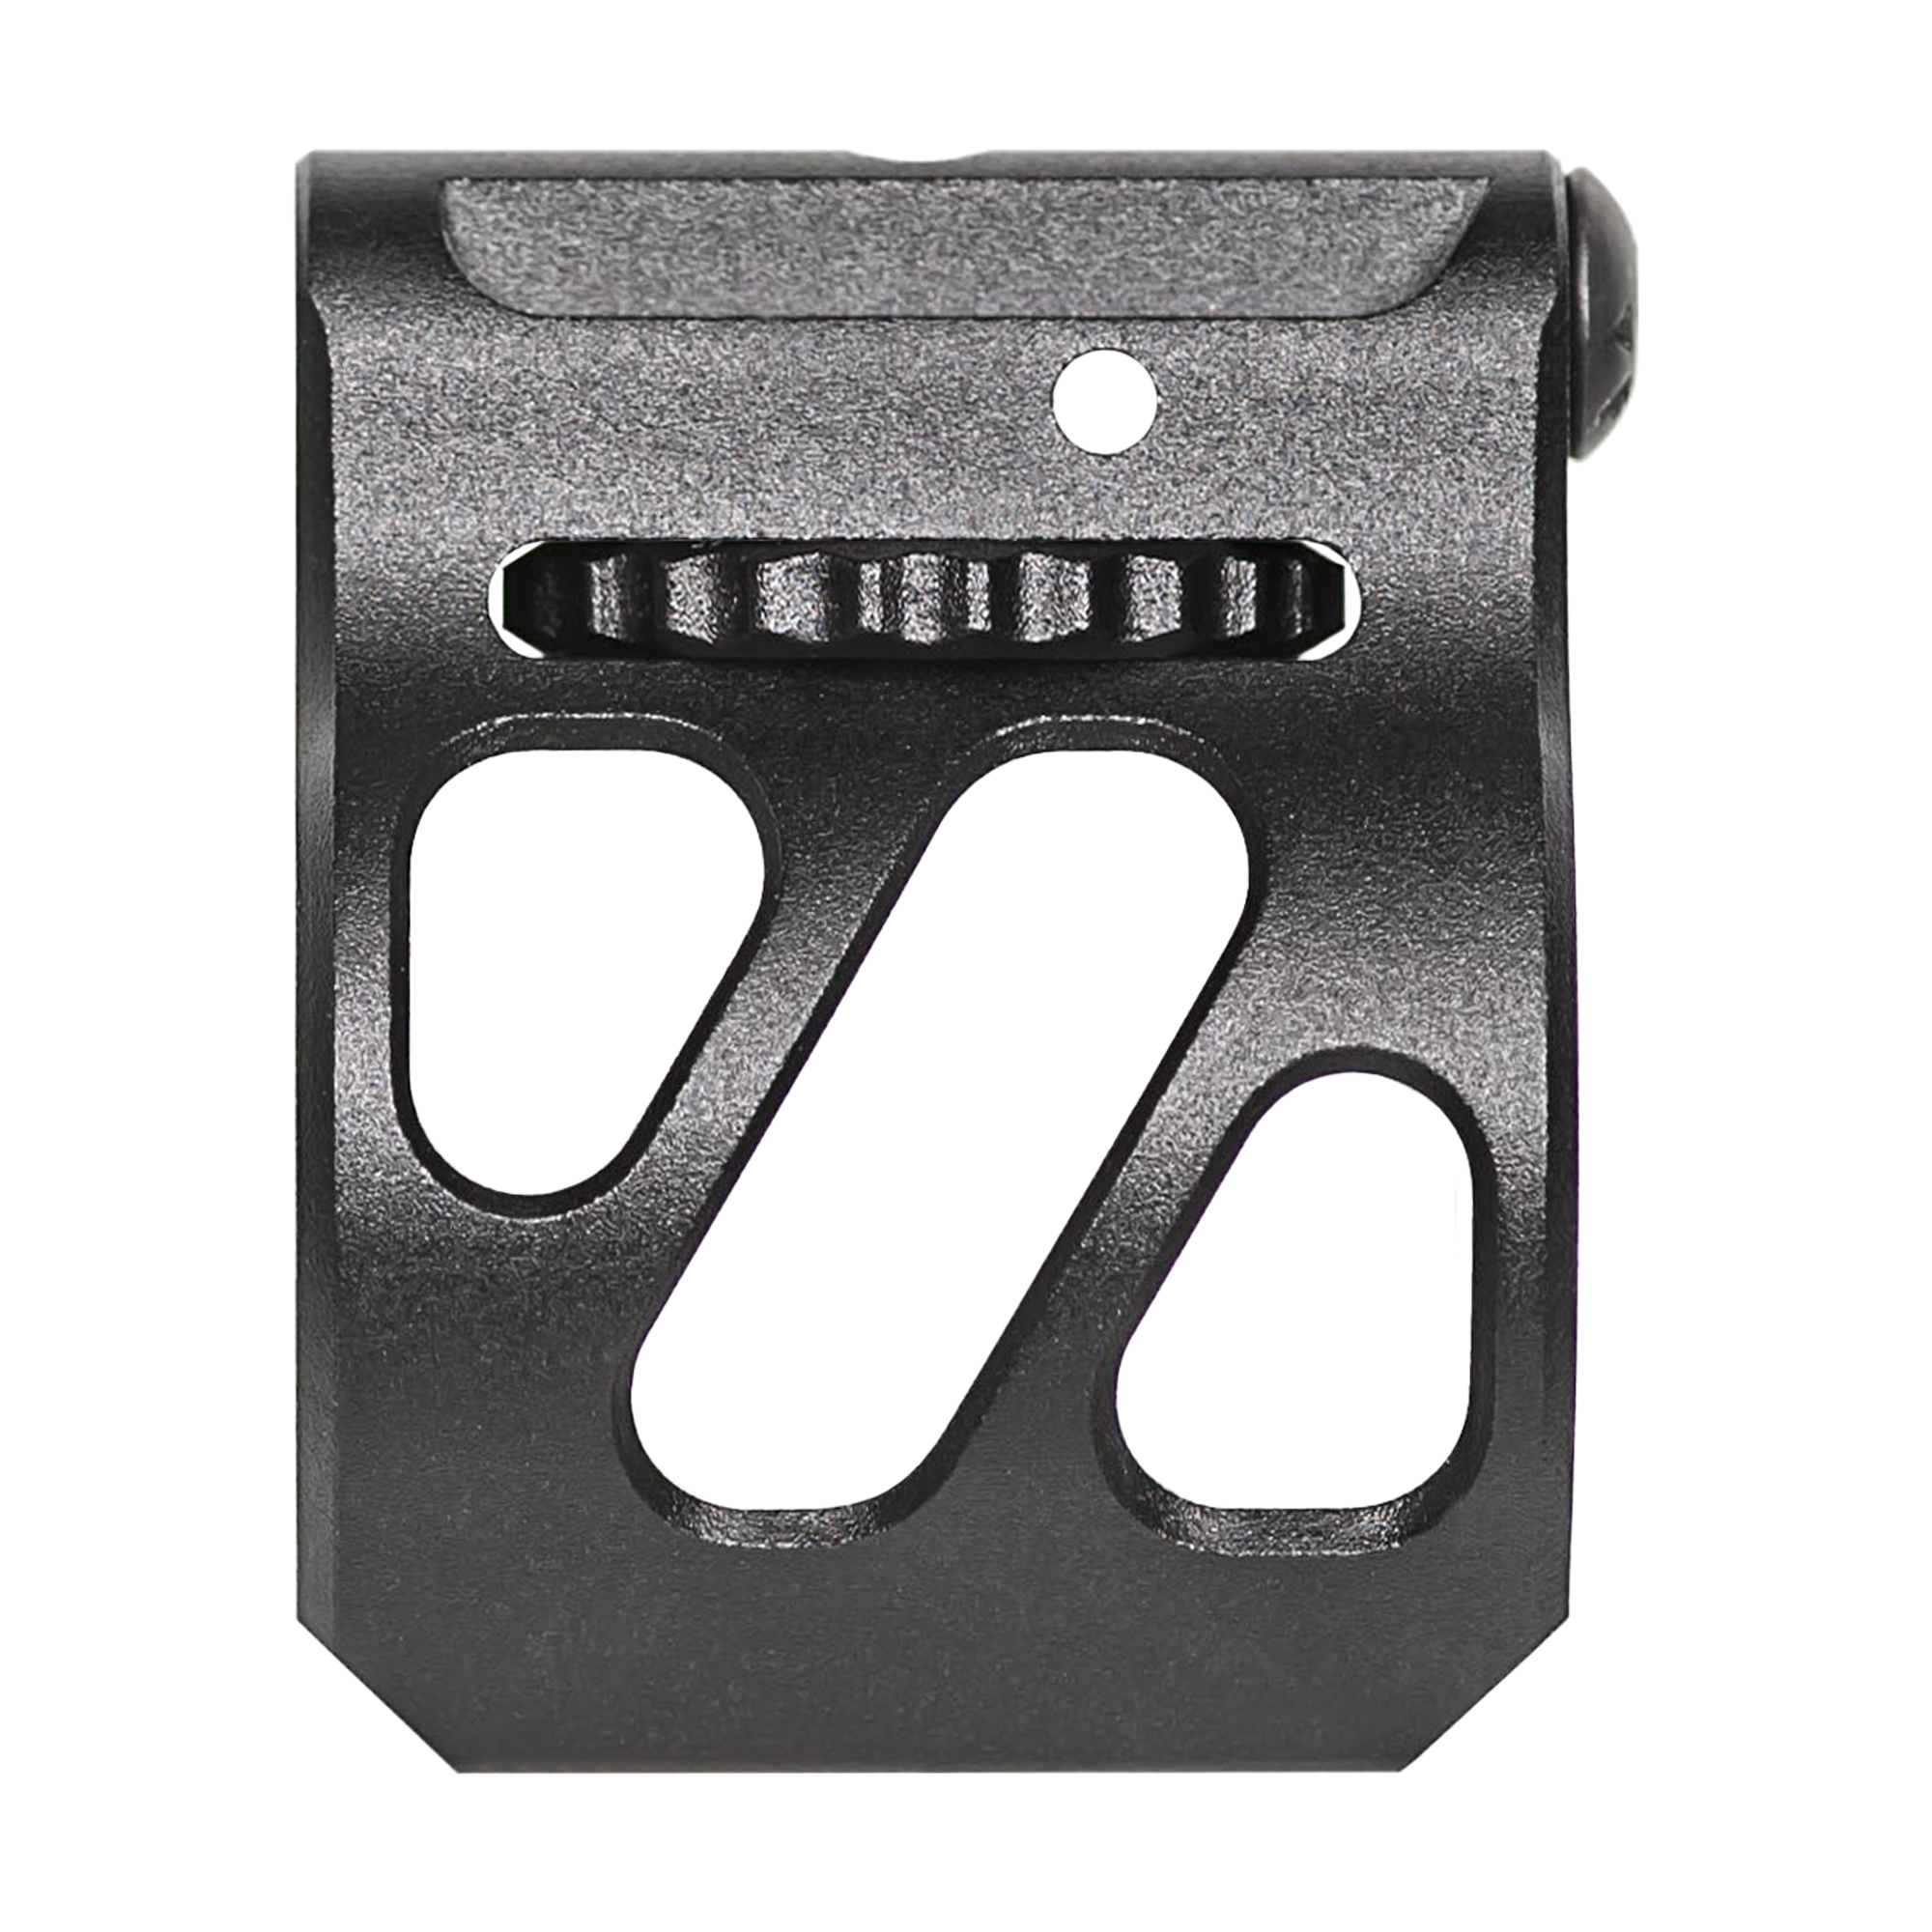 Adjustable Gas Block w/ FlyWheel™ Technology - .750